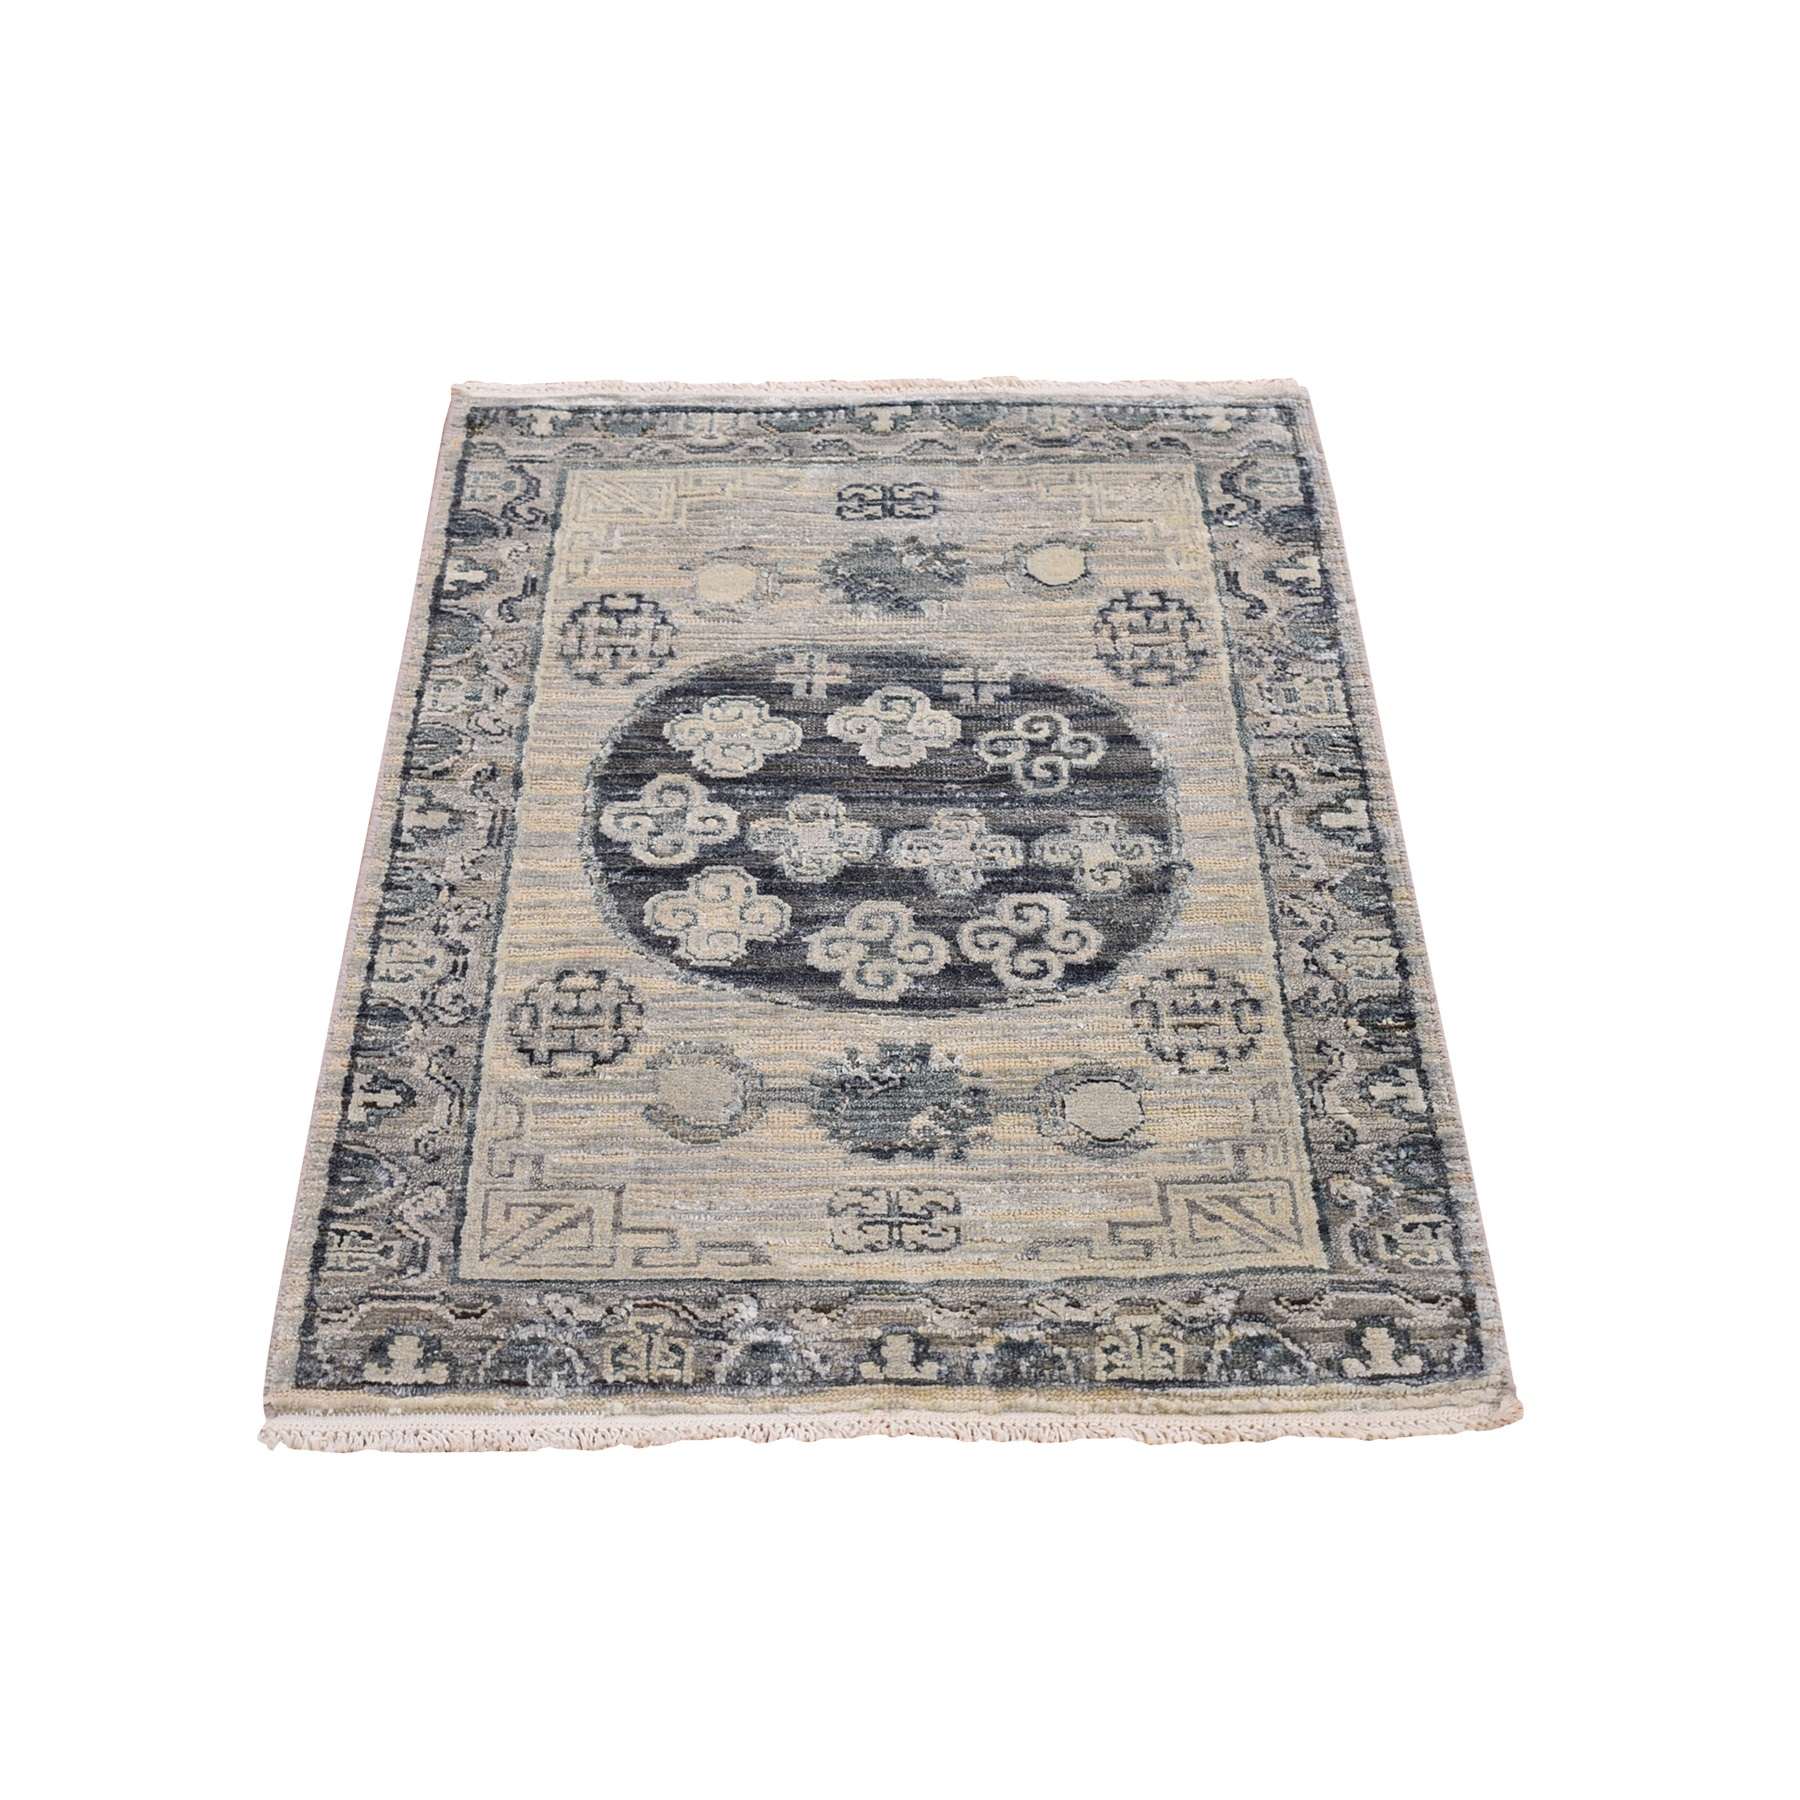 Wool and Real Silk Collection Hand Knotted Grey Rug No: 1133042